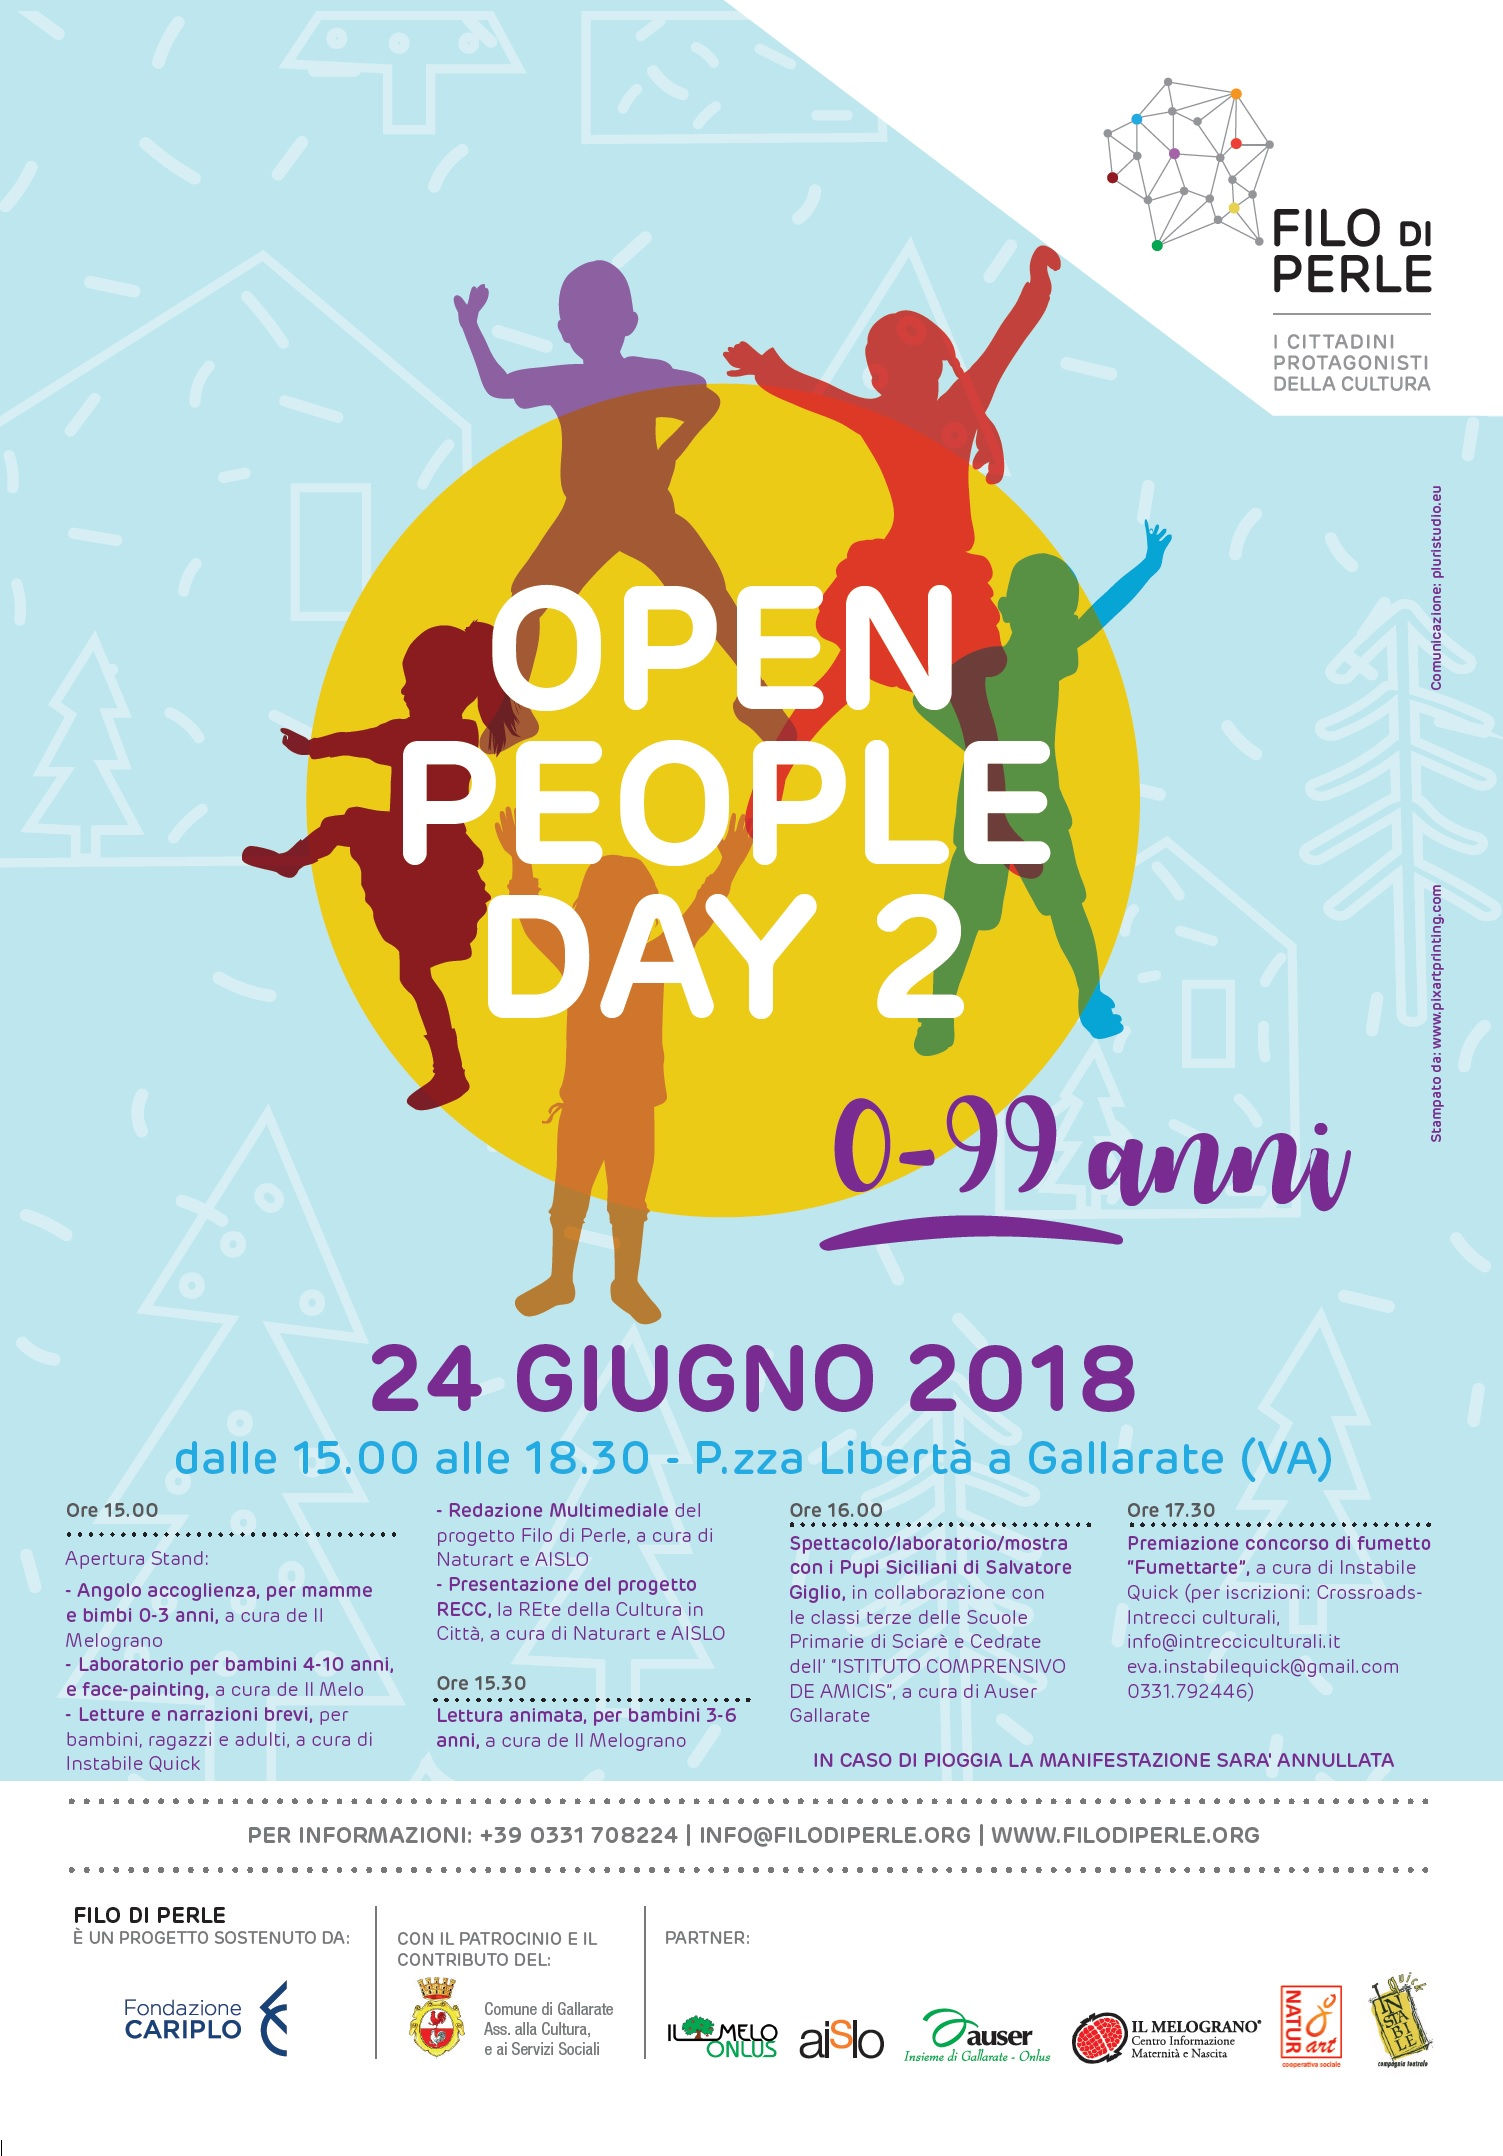 FILO DI PERLE - OPEN PEOPLE DAY 2 - 24 GIUGNO 2018